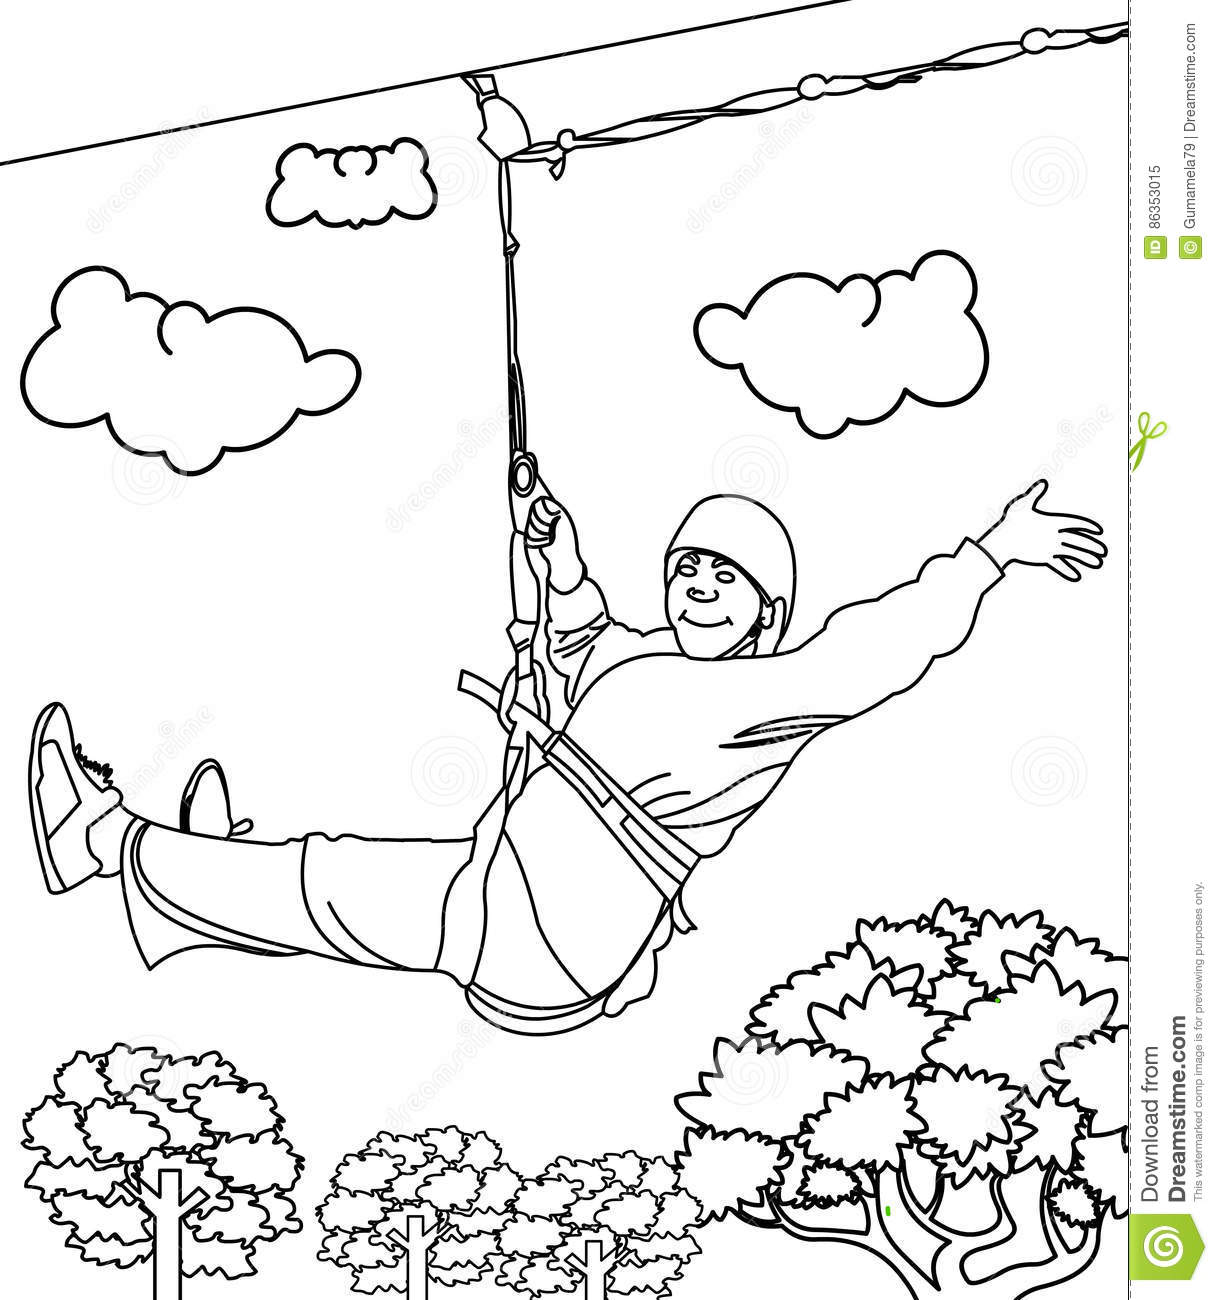 Line Art Zip : The gallery for gt zip line drawing